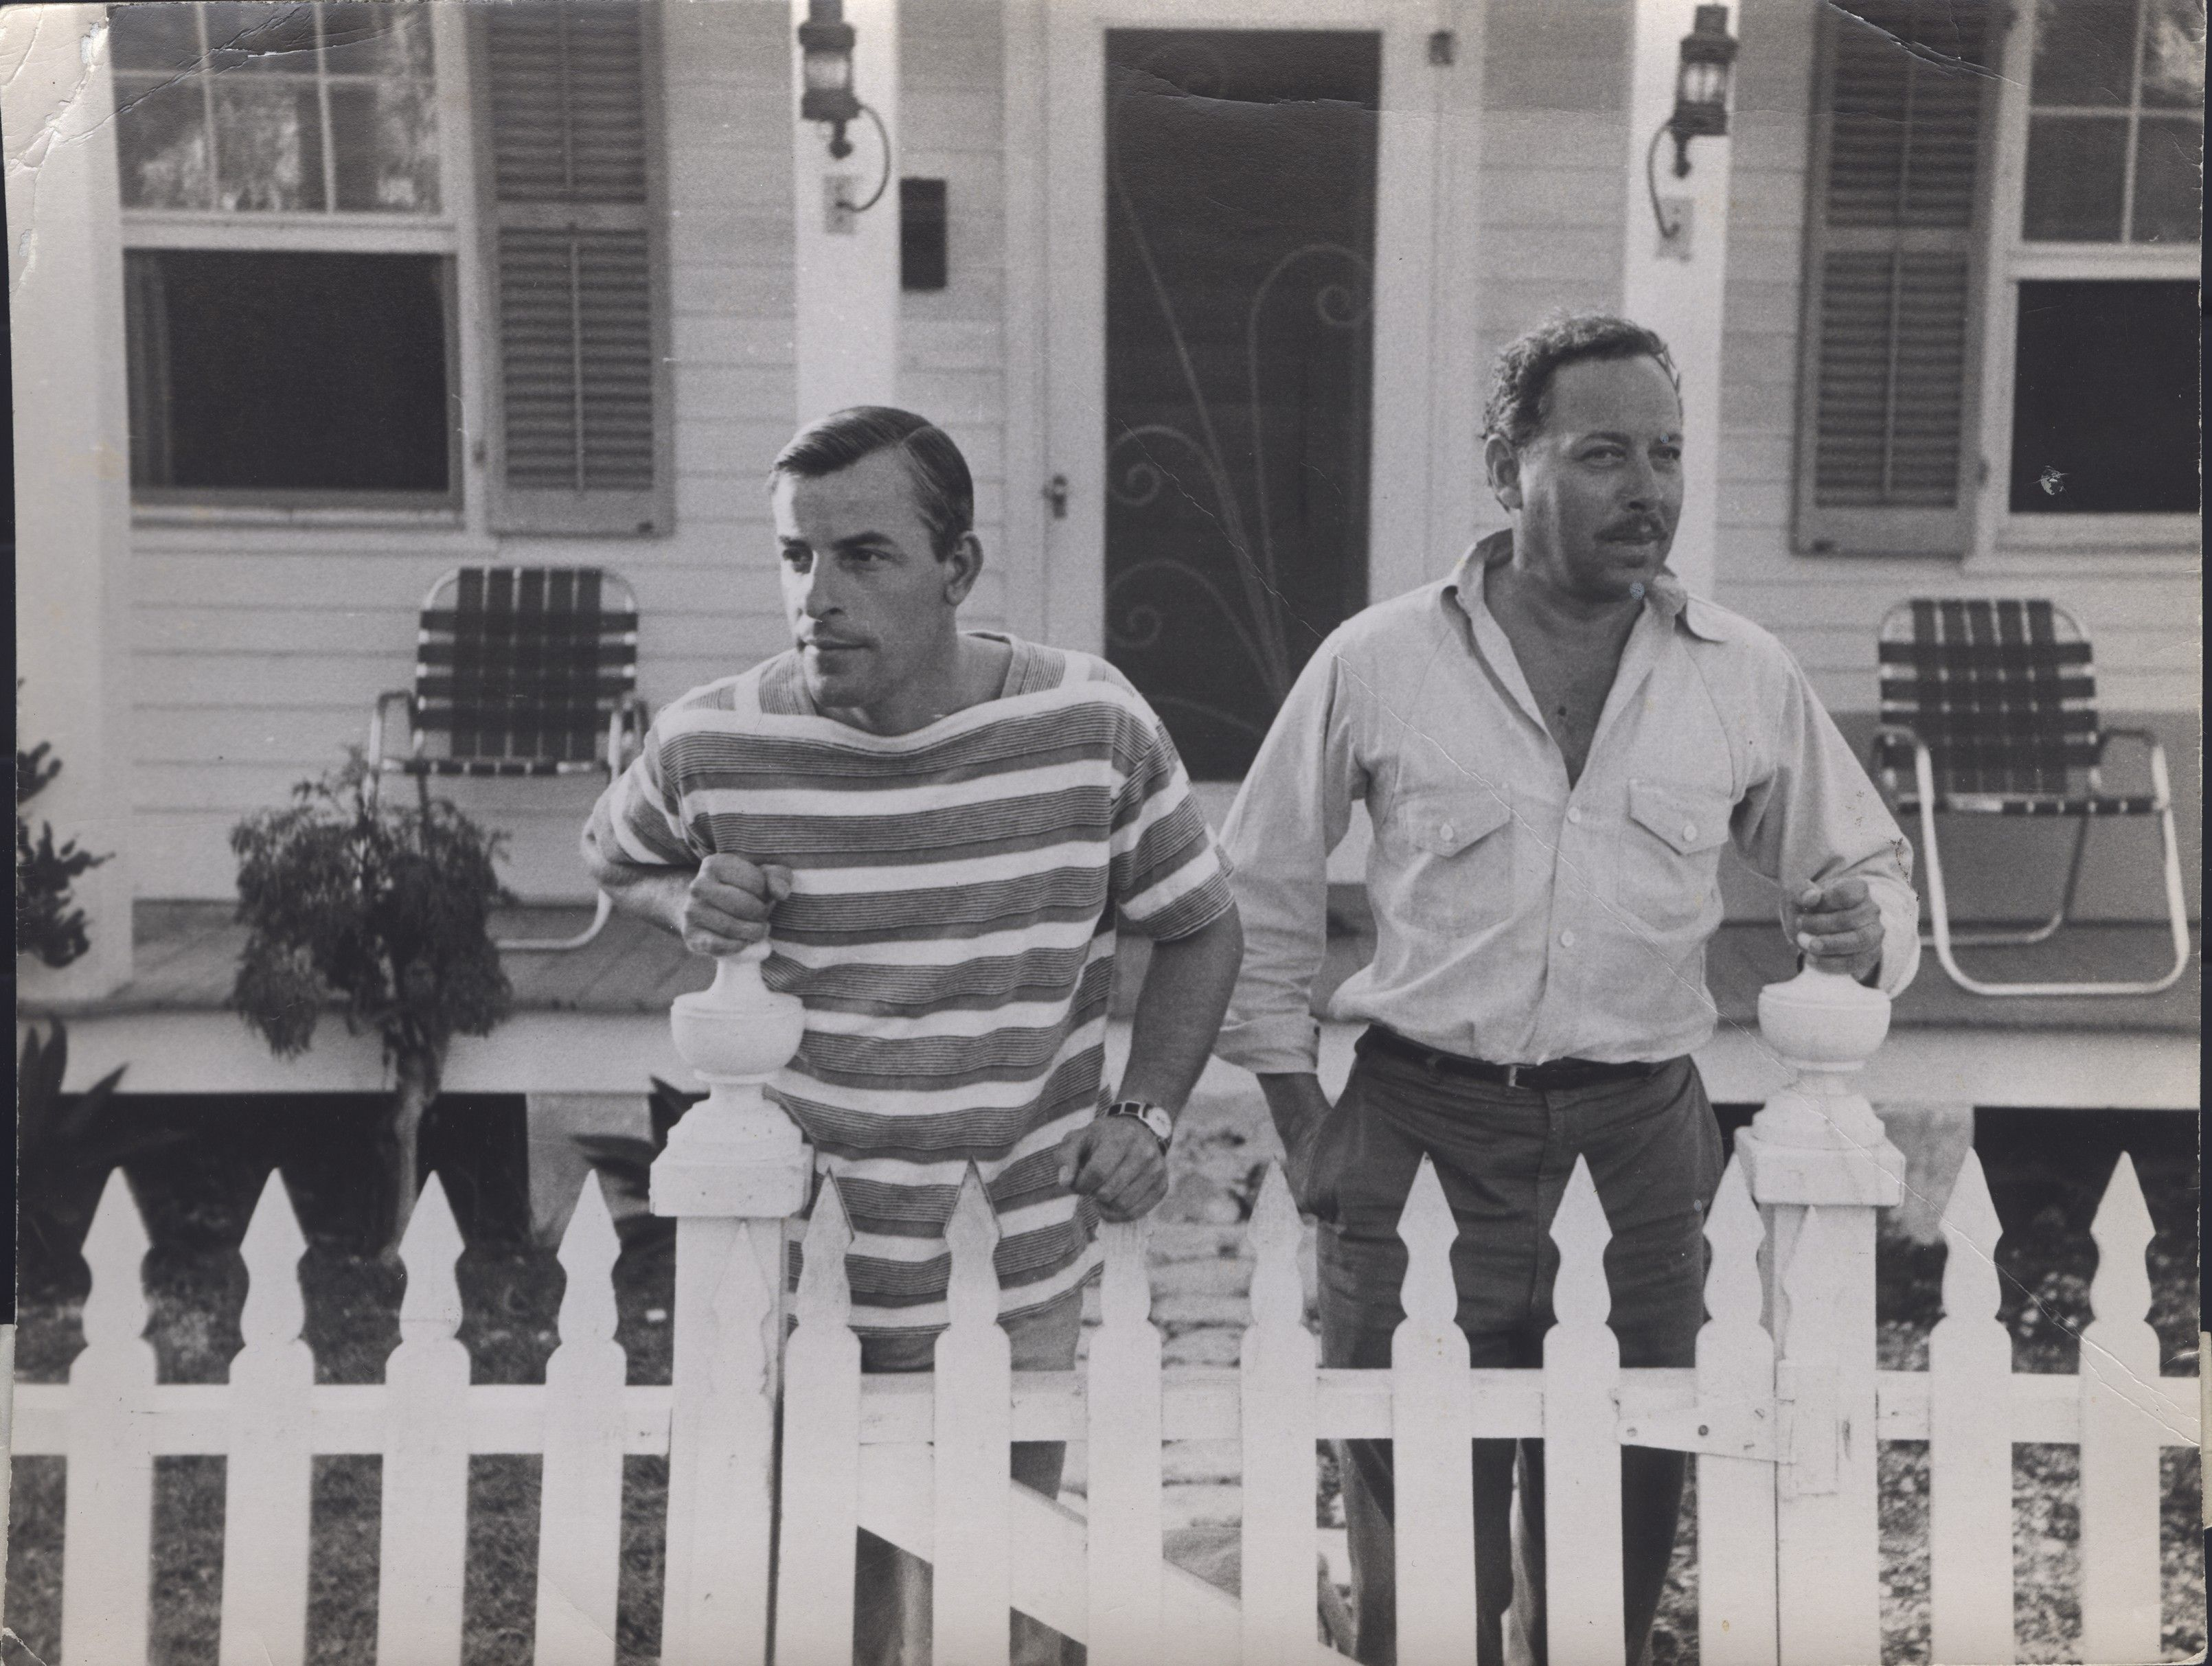 tennessee williams and his partner frank merlo from the book tennessee williams and his partner frank merlo from the book outlaw marriages by rodger